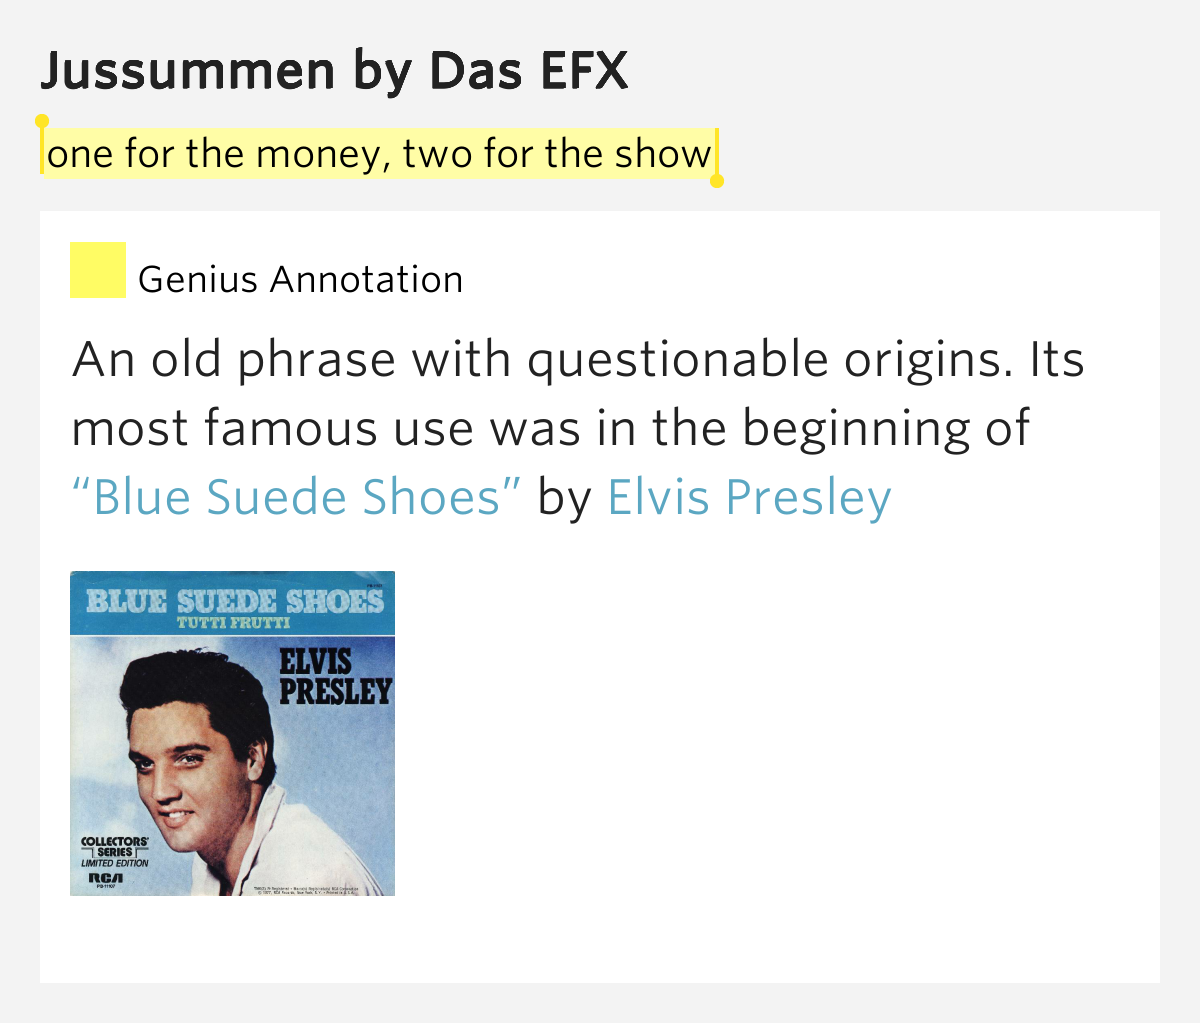 One for the money two for the show jussummen lyrics meaning - One for the money two for the show ...